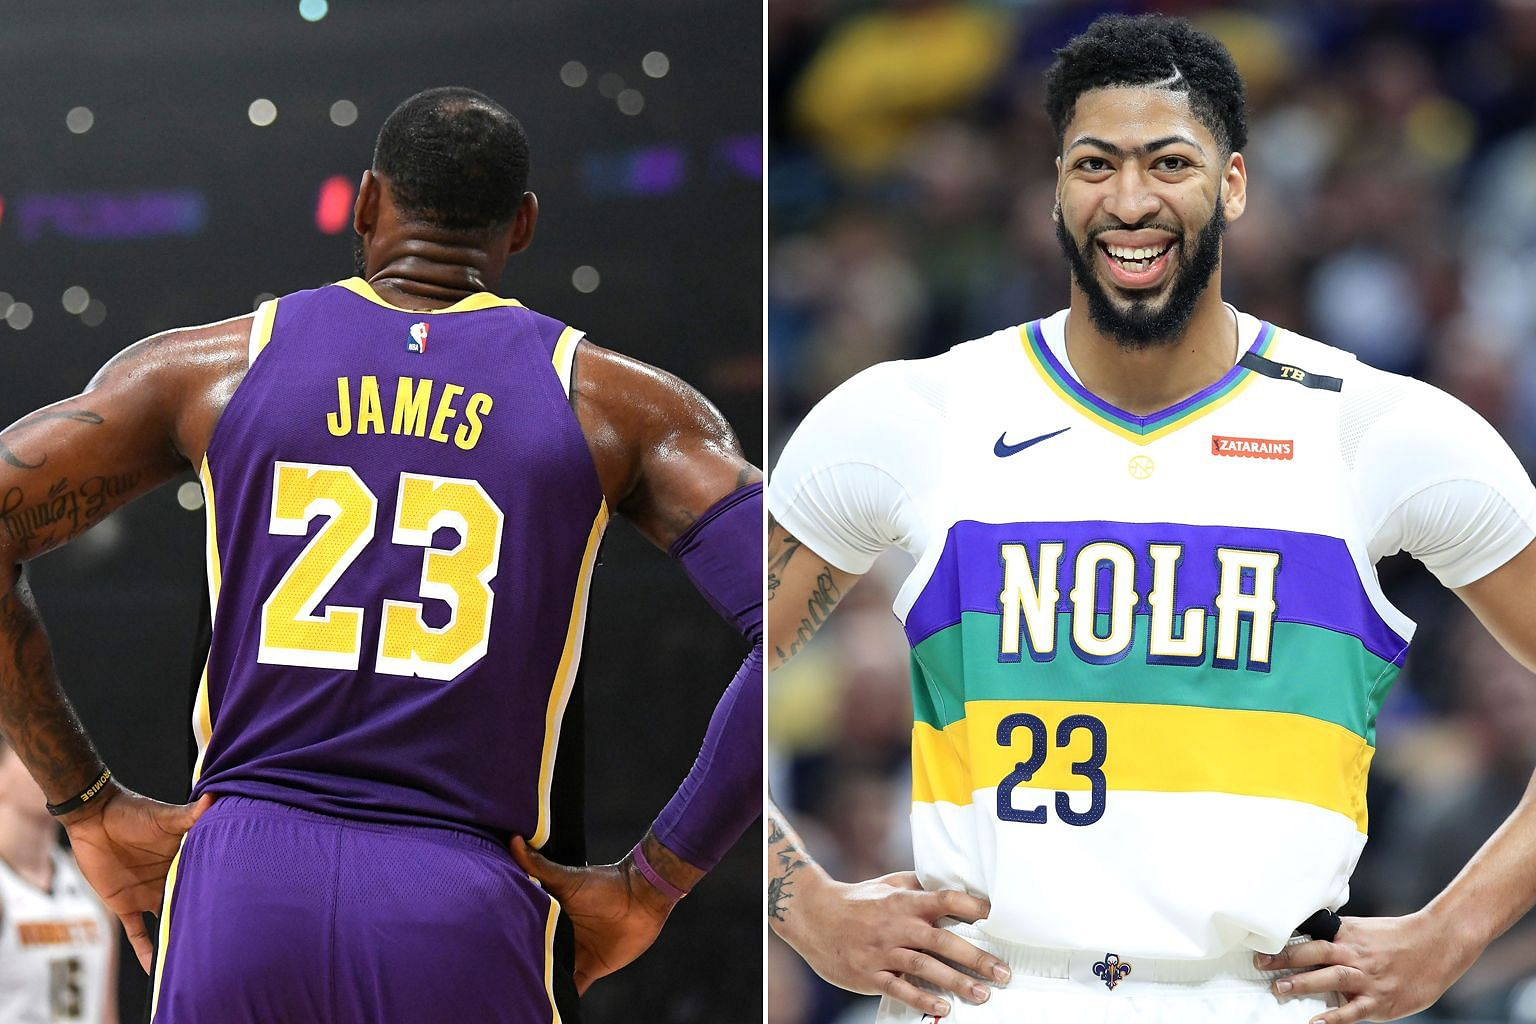 LeBron James will give up his No. 23 jersey to new Los Angeles Lakers teammate Anthony Davis, who will join them in exchange for players and a draft pick. Davis will also sacrifice a trade bonus.